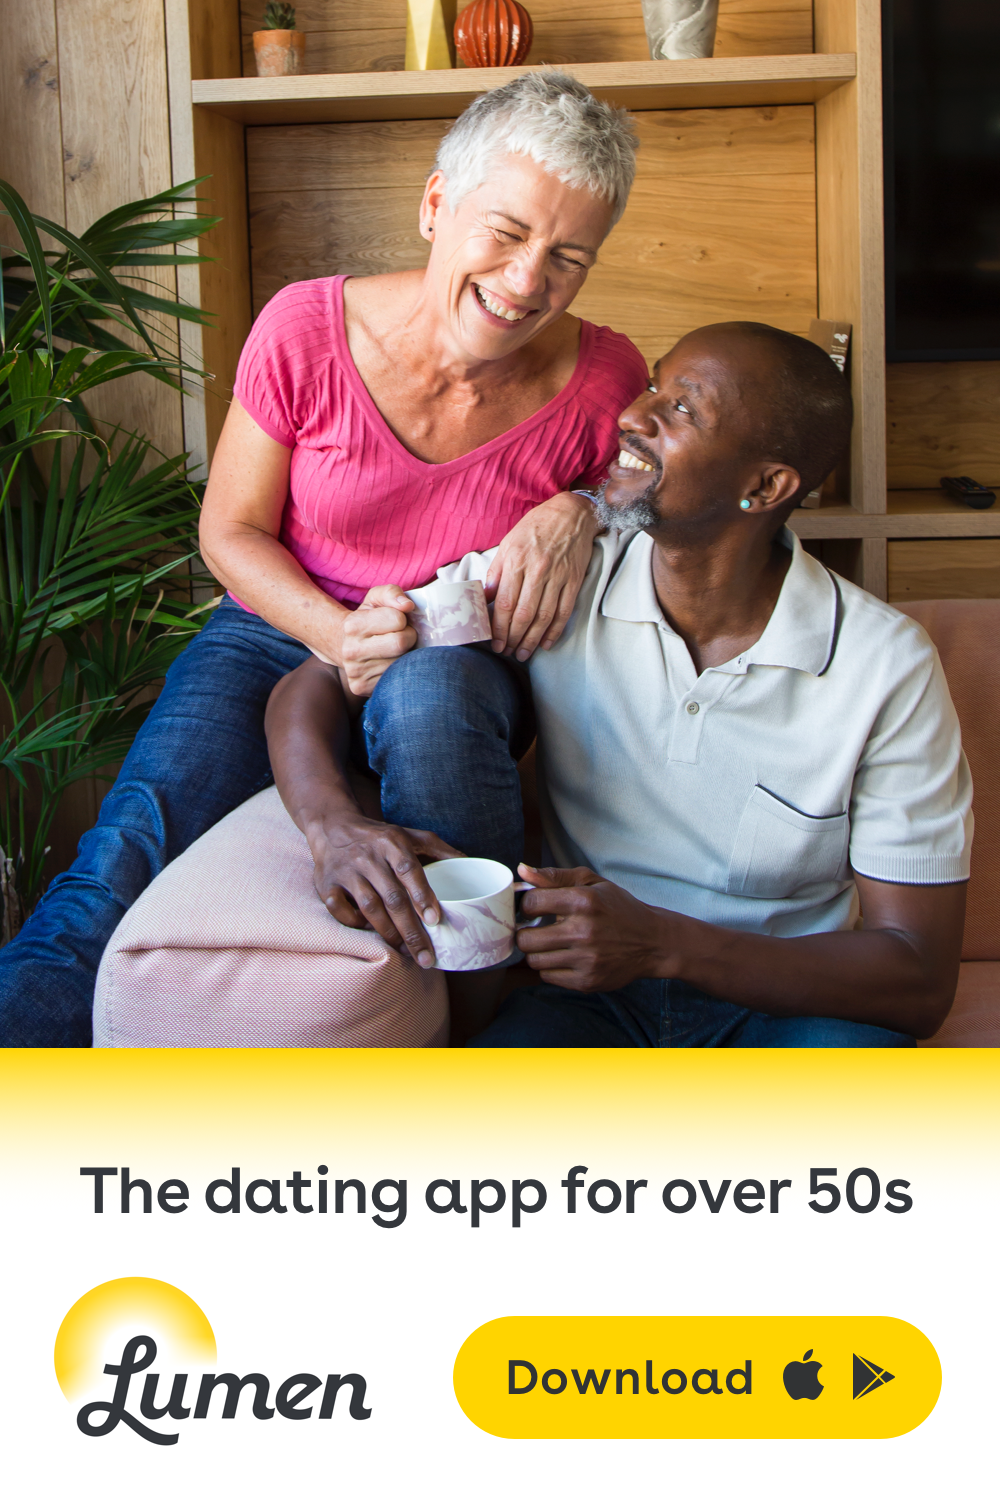 real dating sites that are not scams